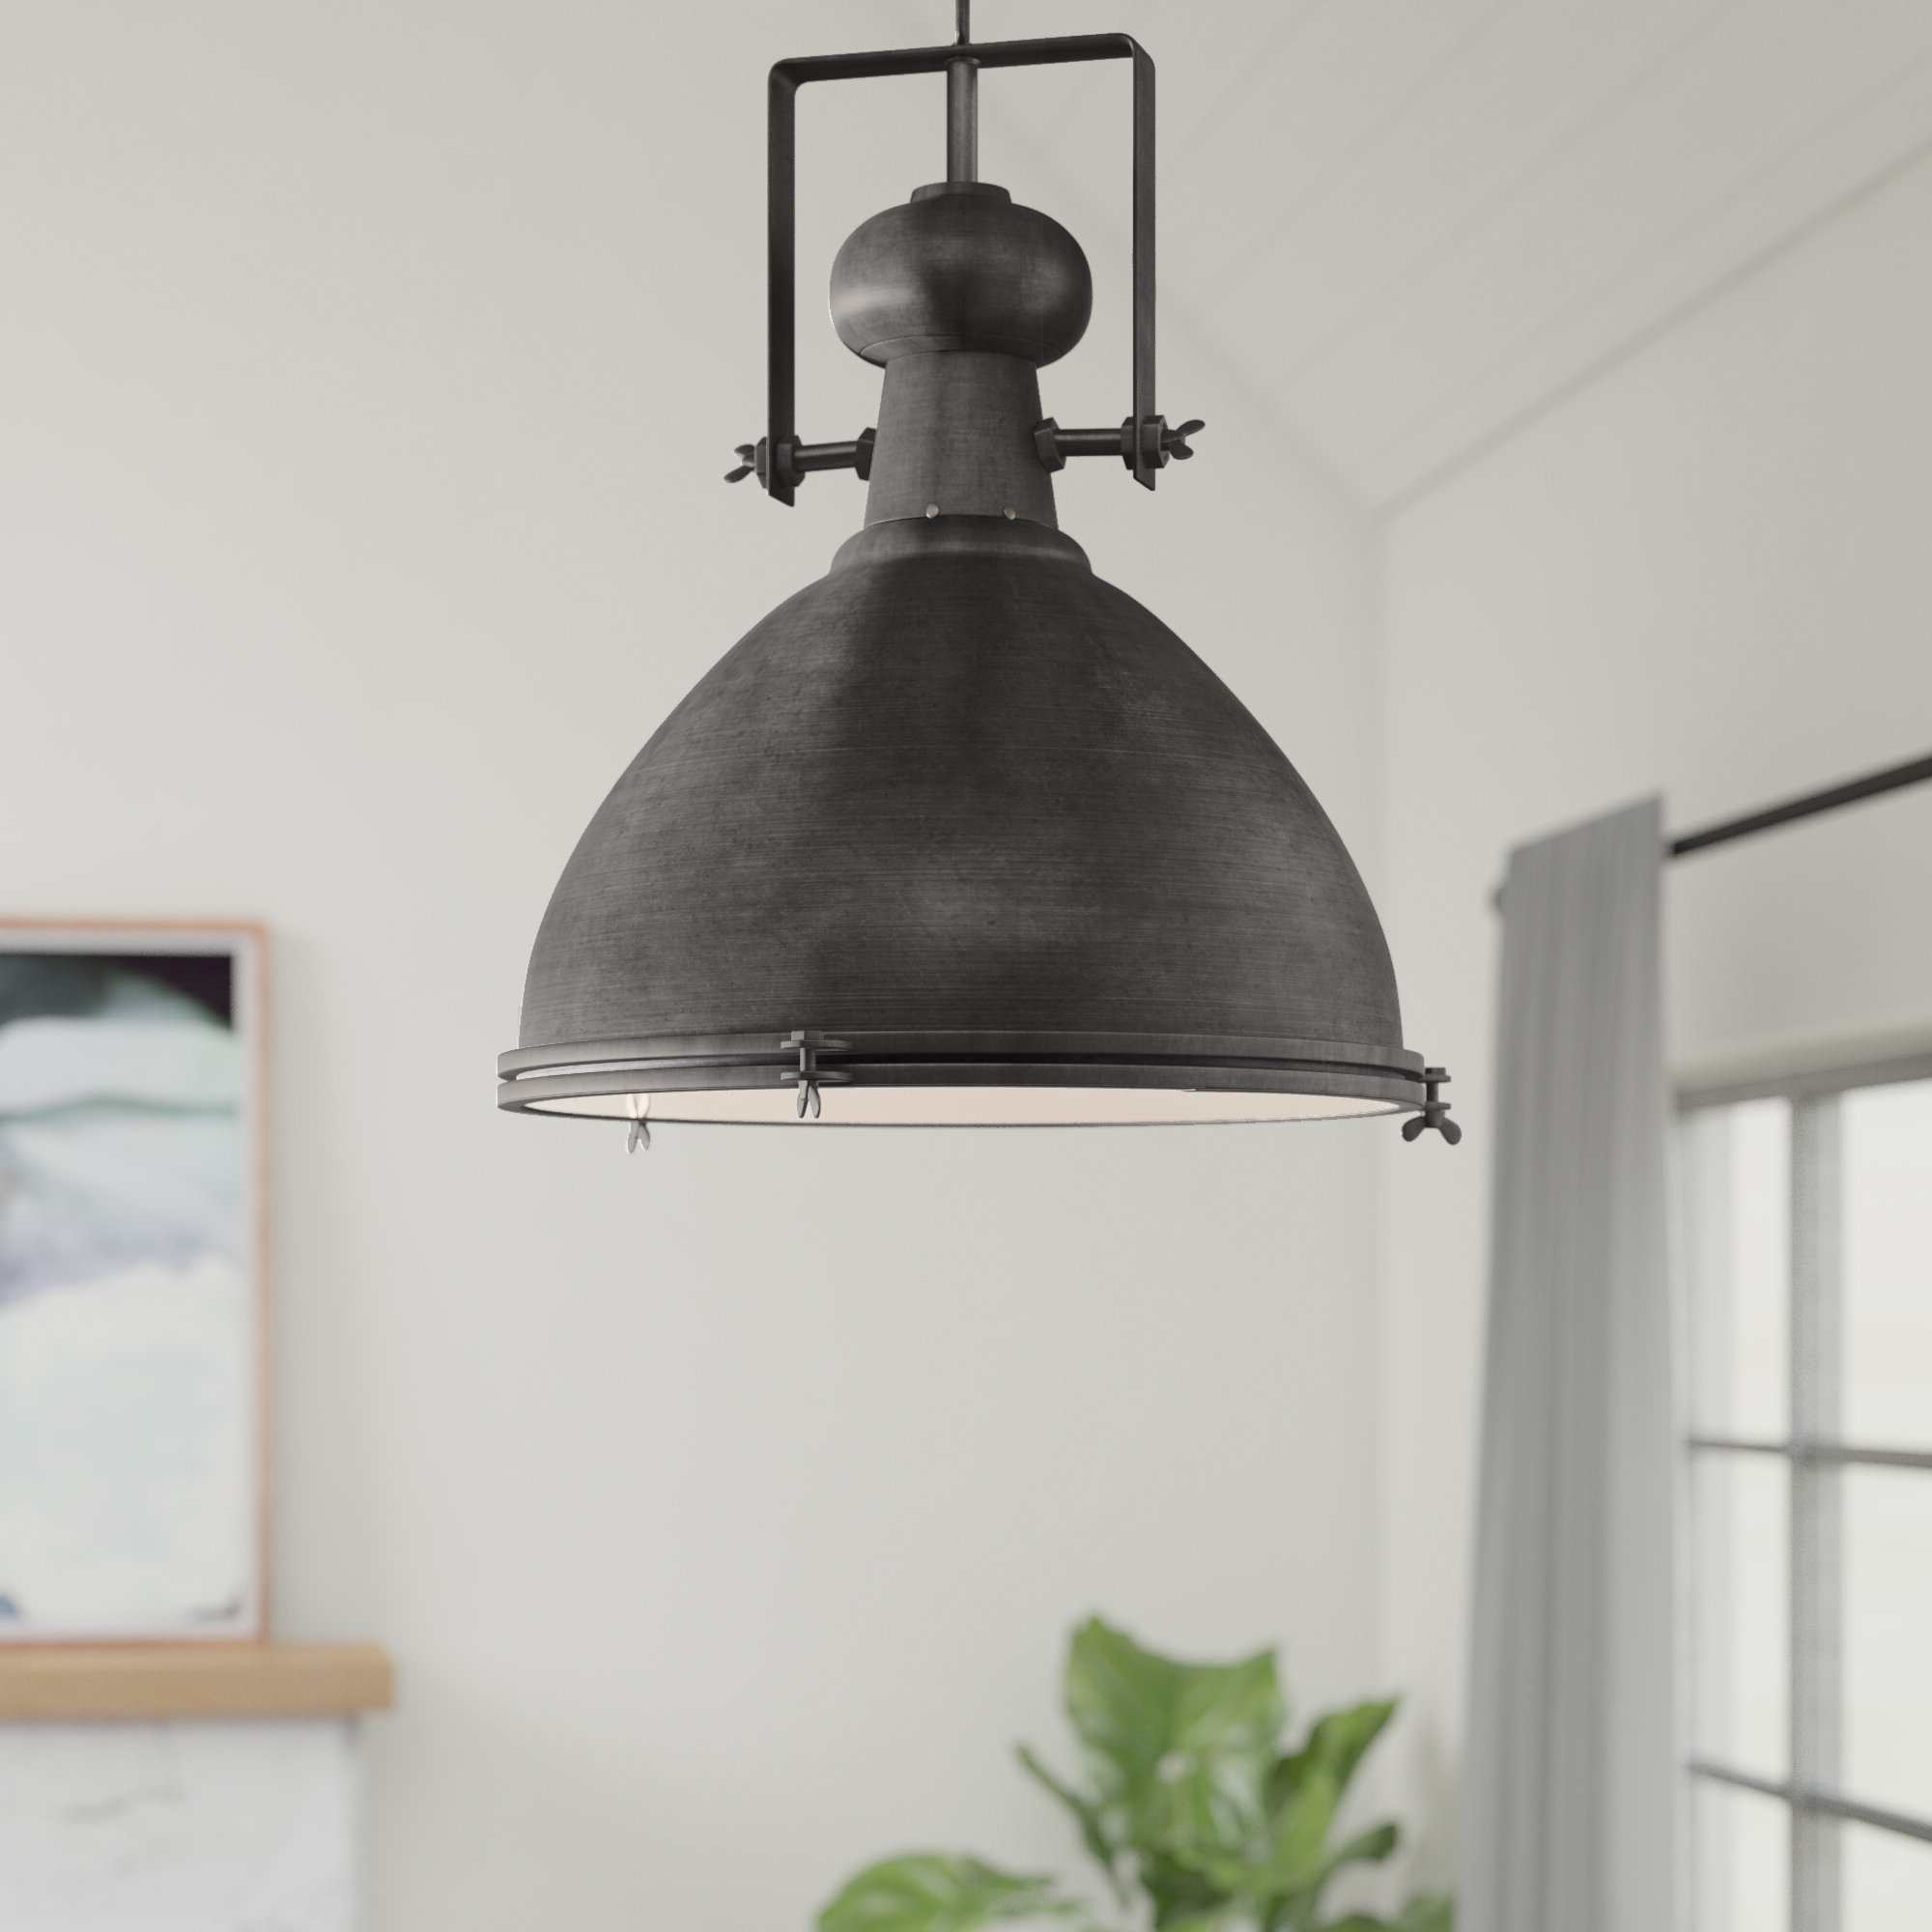 17 Stories Lavern 1 Light Single Dome Pendant Pertaining To Newest Hamilton 1 Light Single Dome Pendants (View 1 of 20)